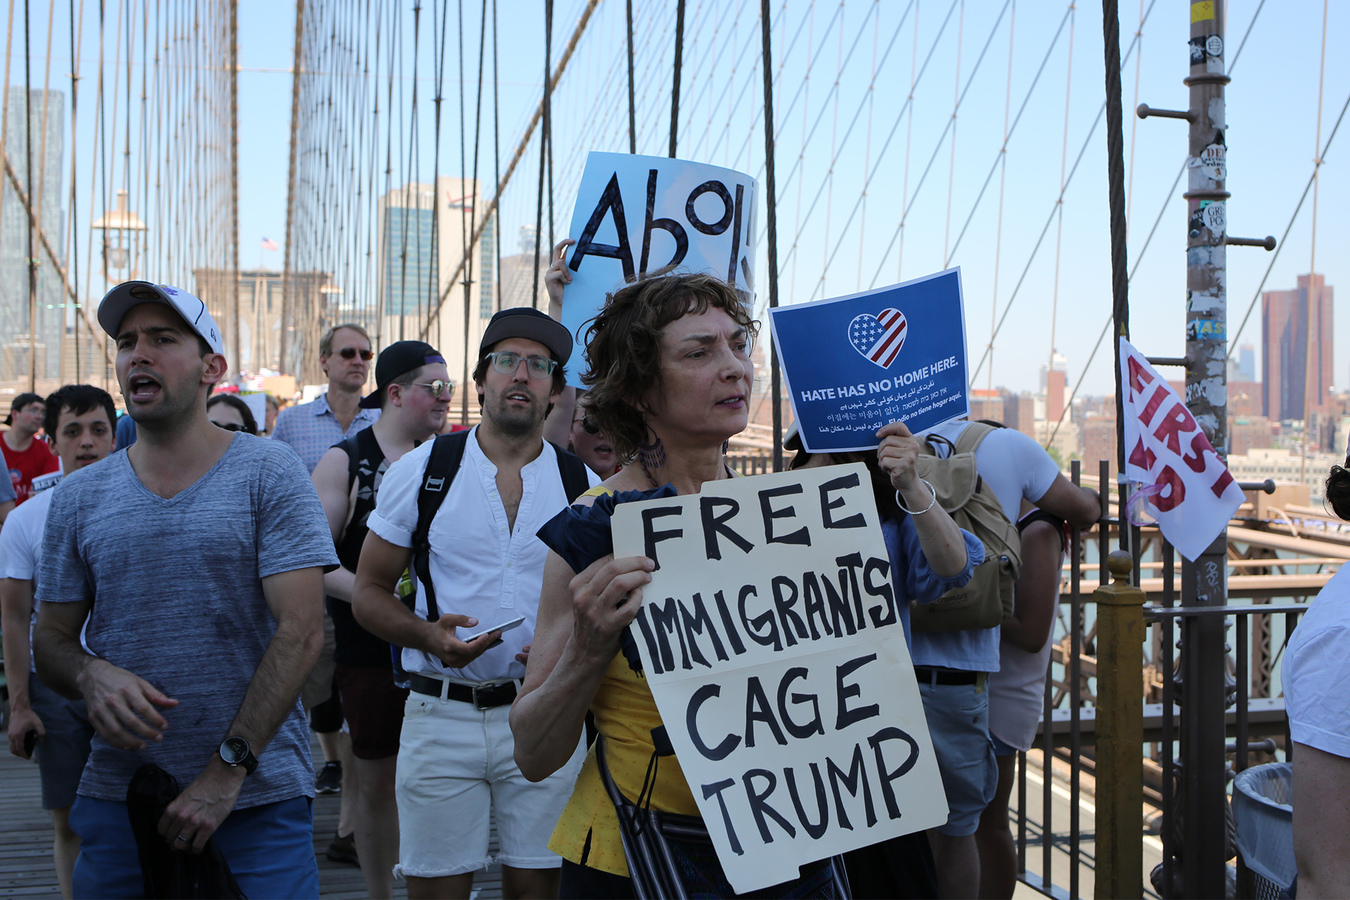 Families Belong Together Families Belong Together Brooklyn Bridge NYC 6/30/18